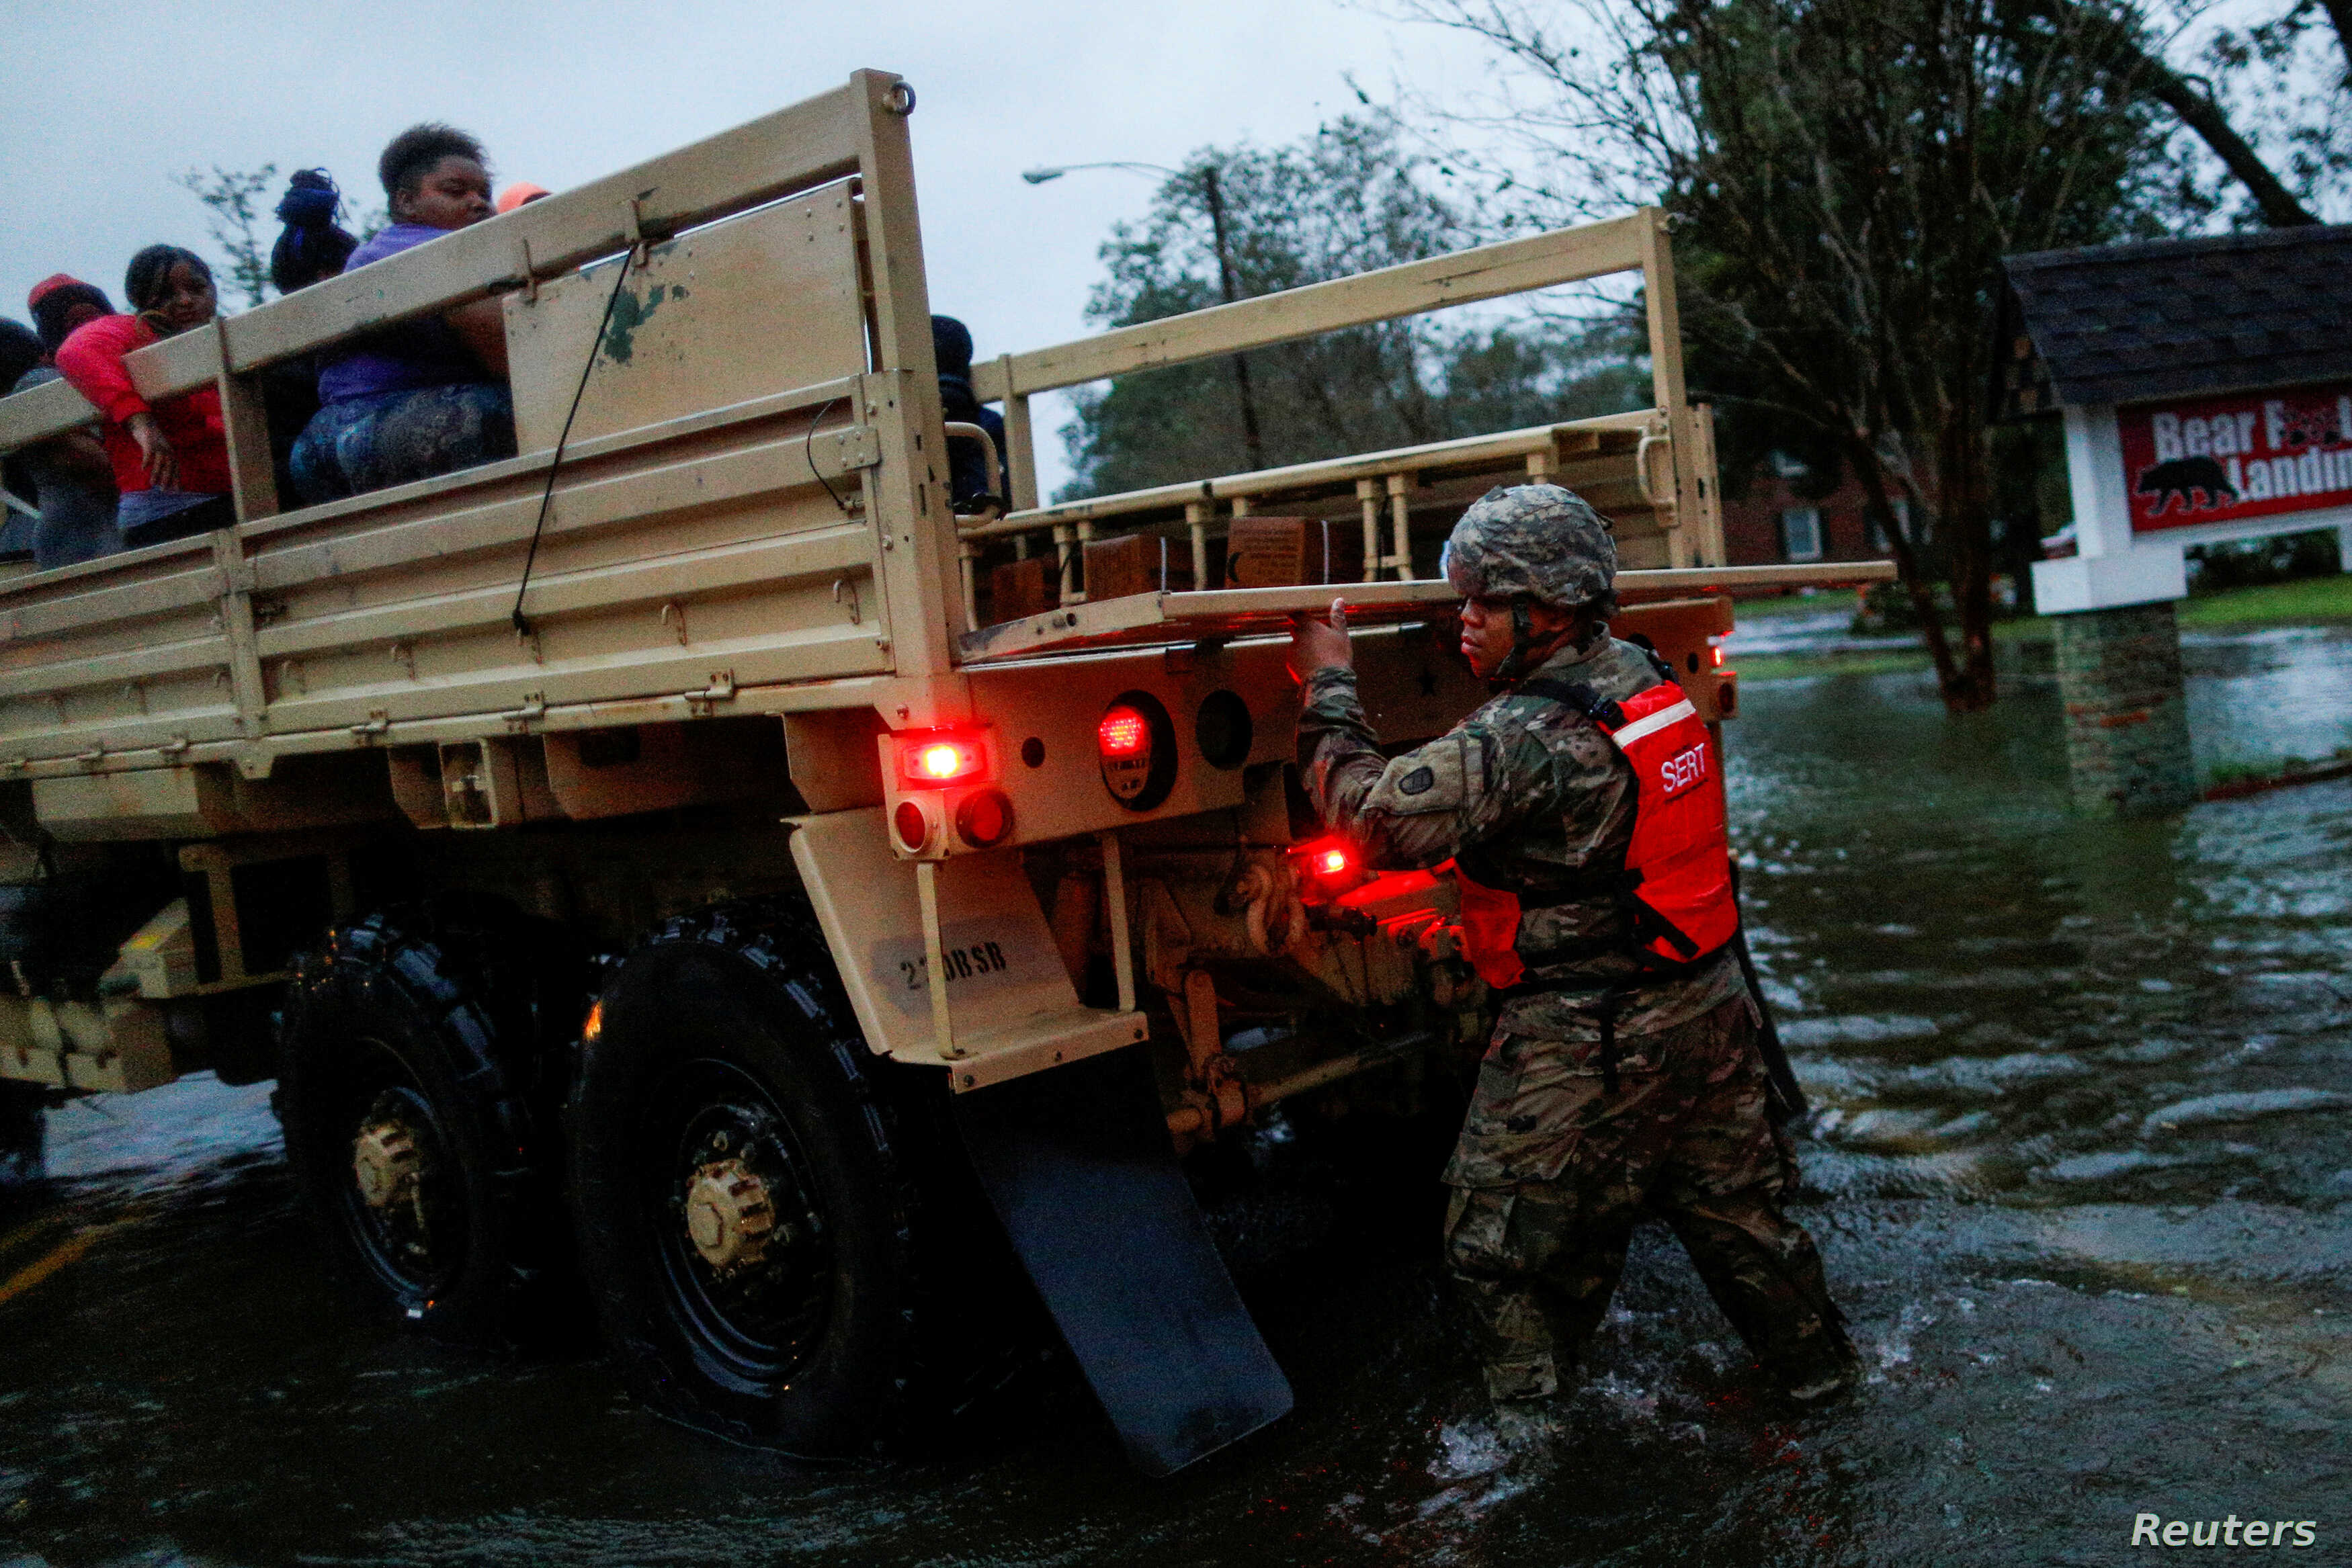 People are rescued by a member of the U.S. Army during the passing of Hurricane Florence in the town of New Bern, North Carolina, Sept. 14, 2018.